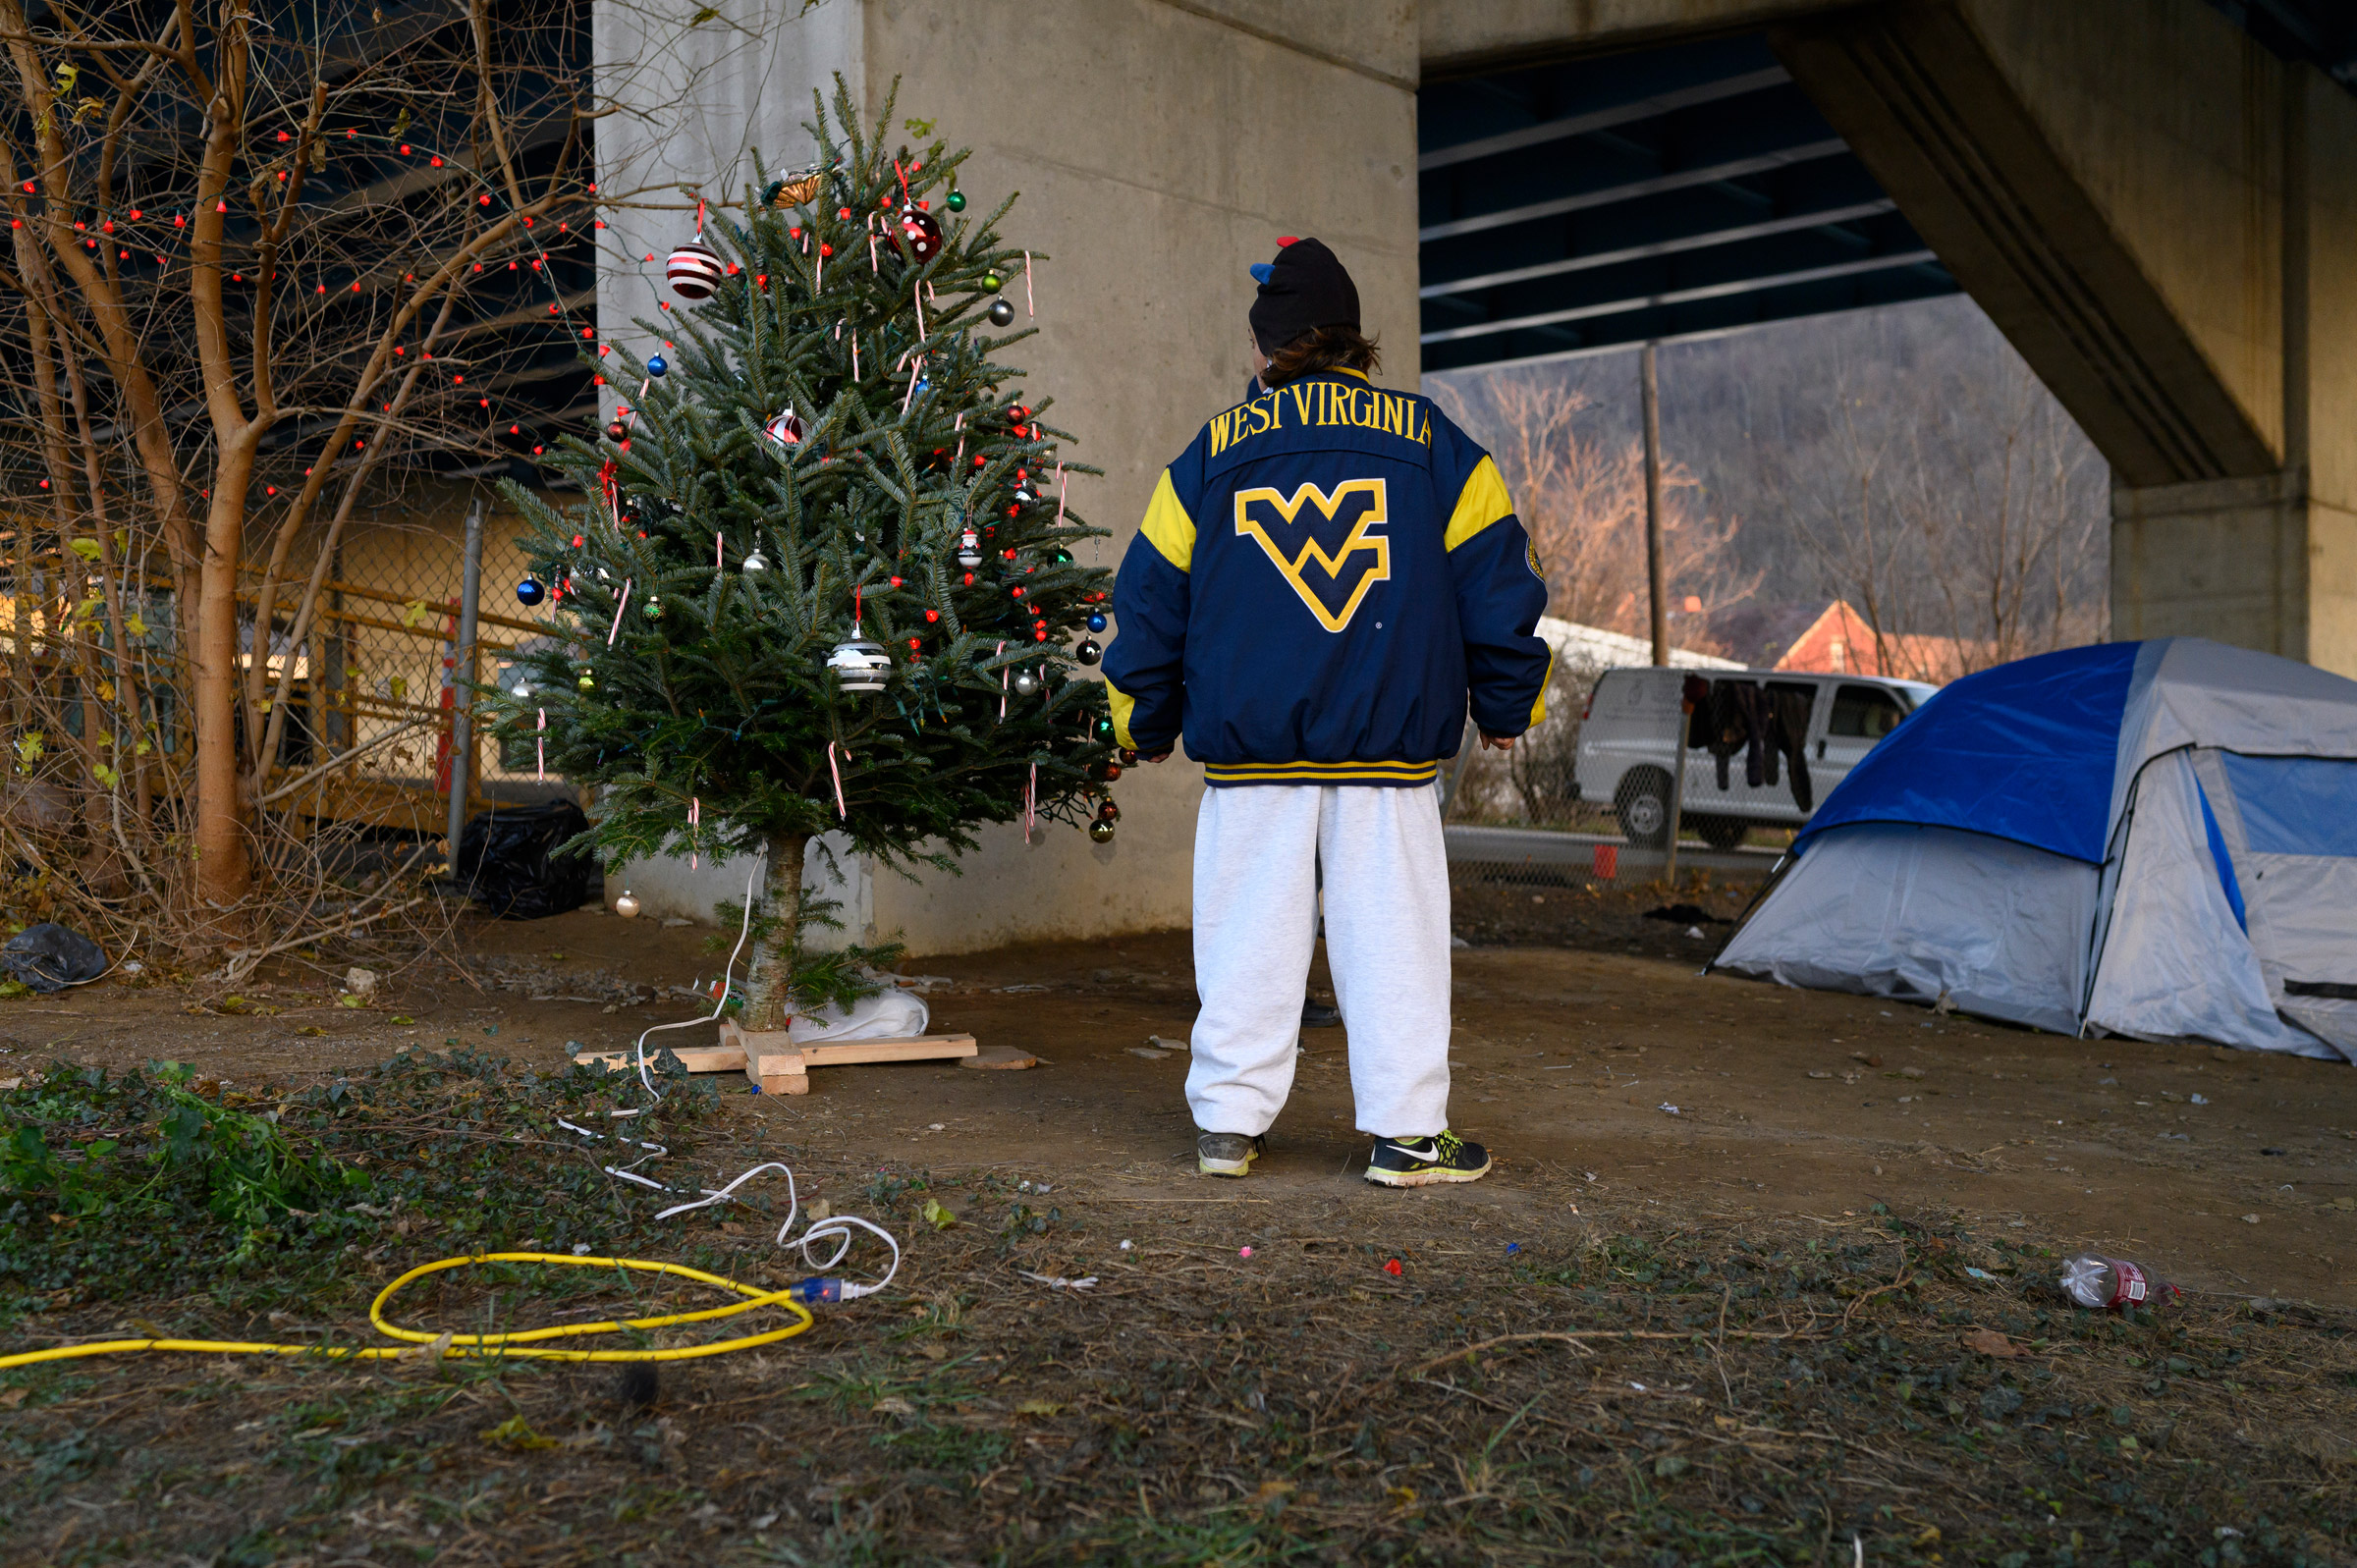 Chrissy stands by a Christmas tree in her encampment on Dec. 9. Chrissy helped bring the tree with others to hold a celebration and sing carols. After complaints, the City of Wheeling removed the tree's power, citing that they agreed to supply electricity for a temporary shower station adjacent to the camp but had not agreed to have it used for anything else.